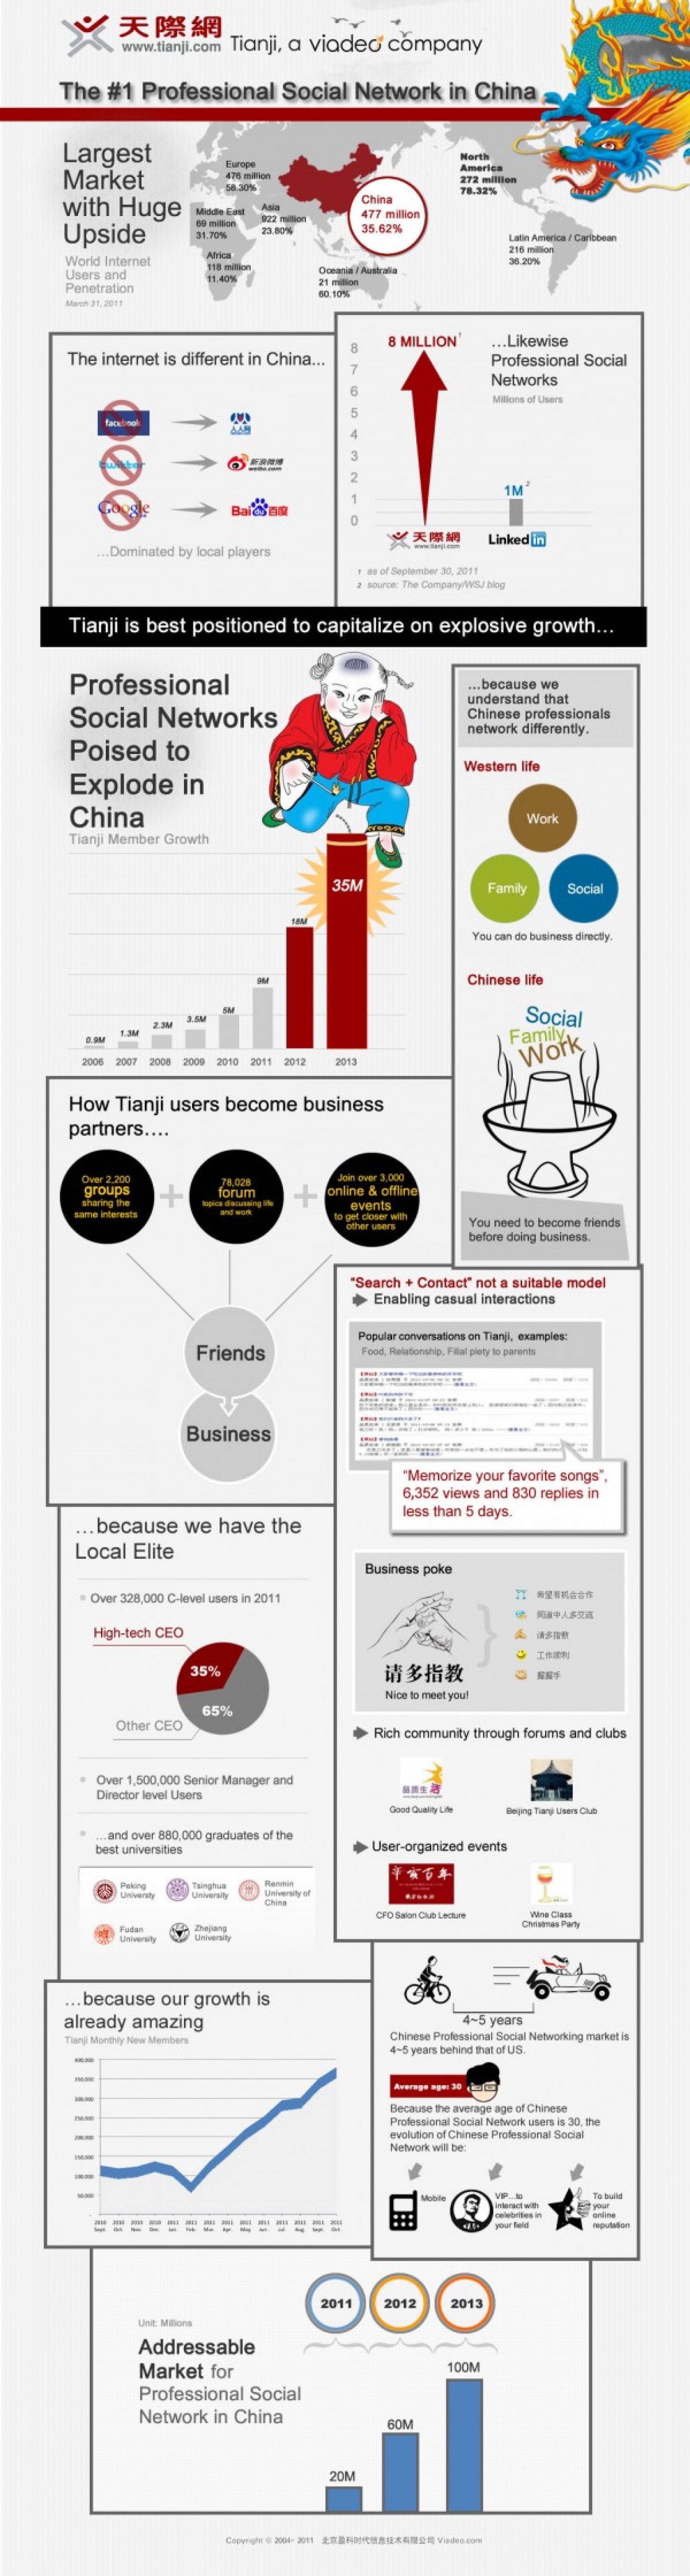 Chinese Professional Social Networking Highlighting China's Unique Internet Culture Infographic